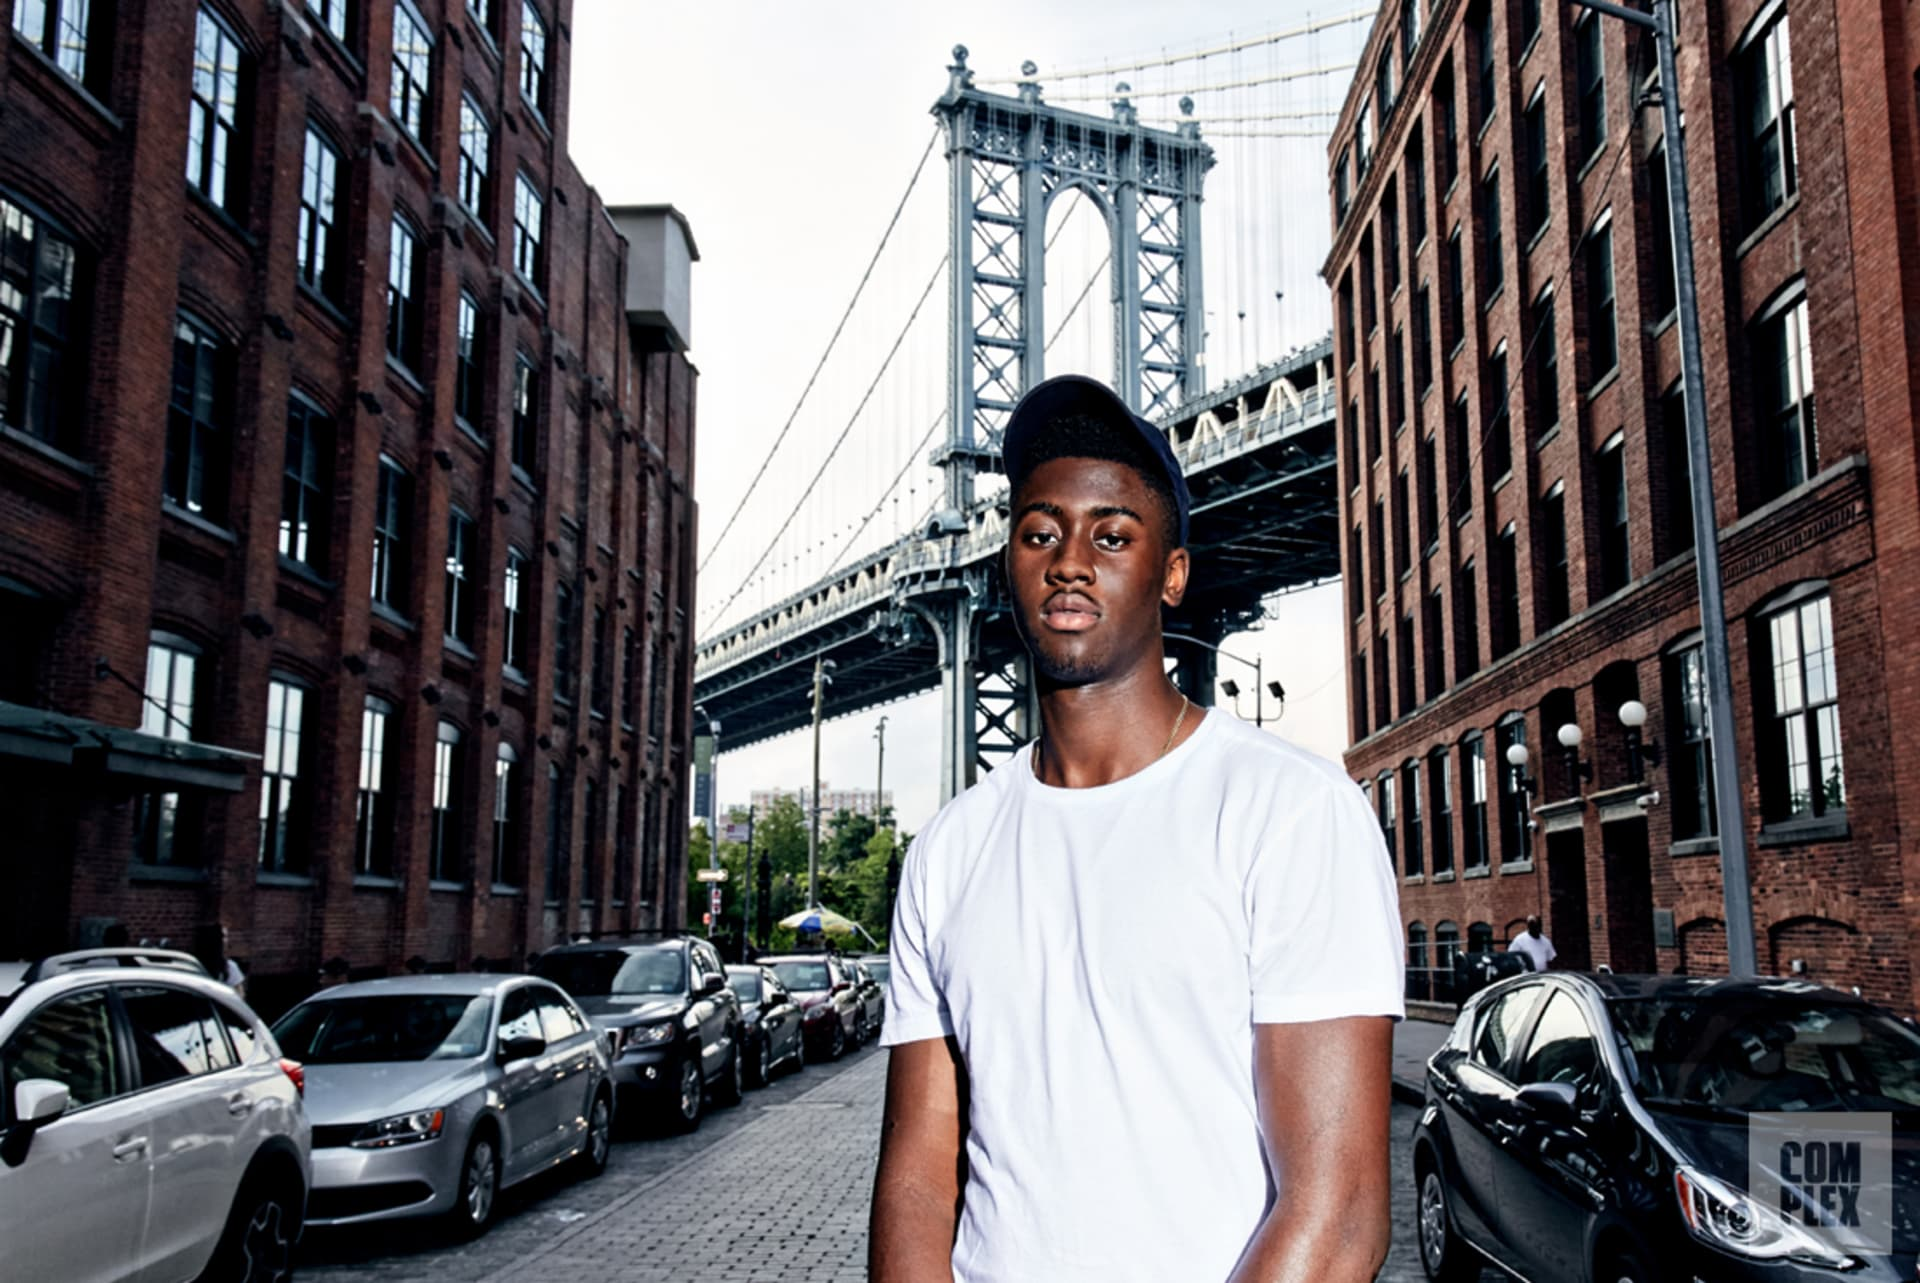 Caris LeVert Manhattan Bridge 2016